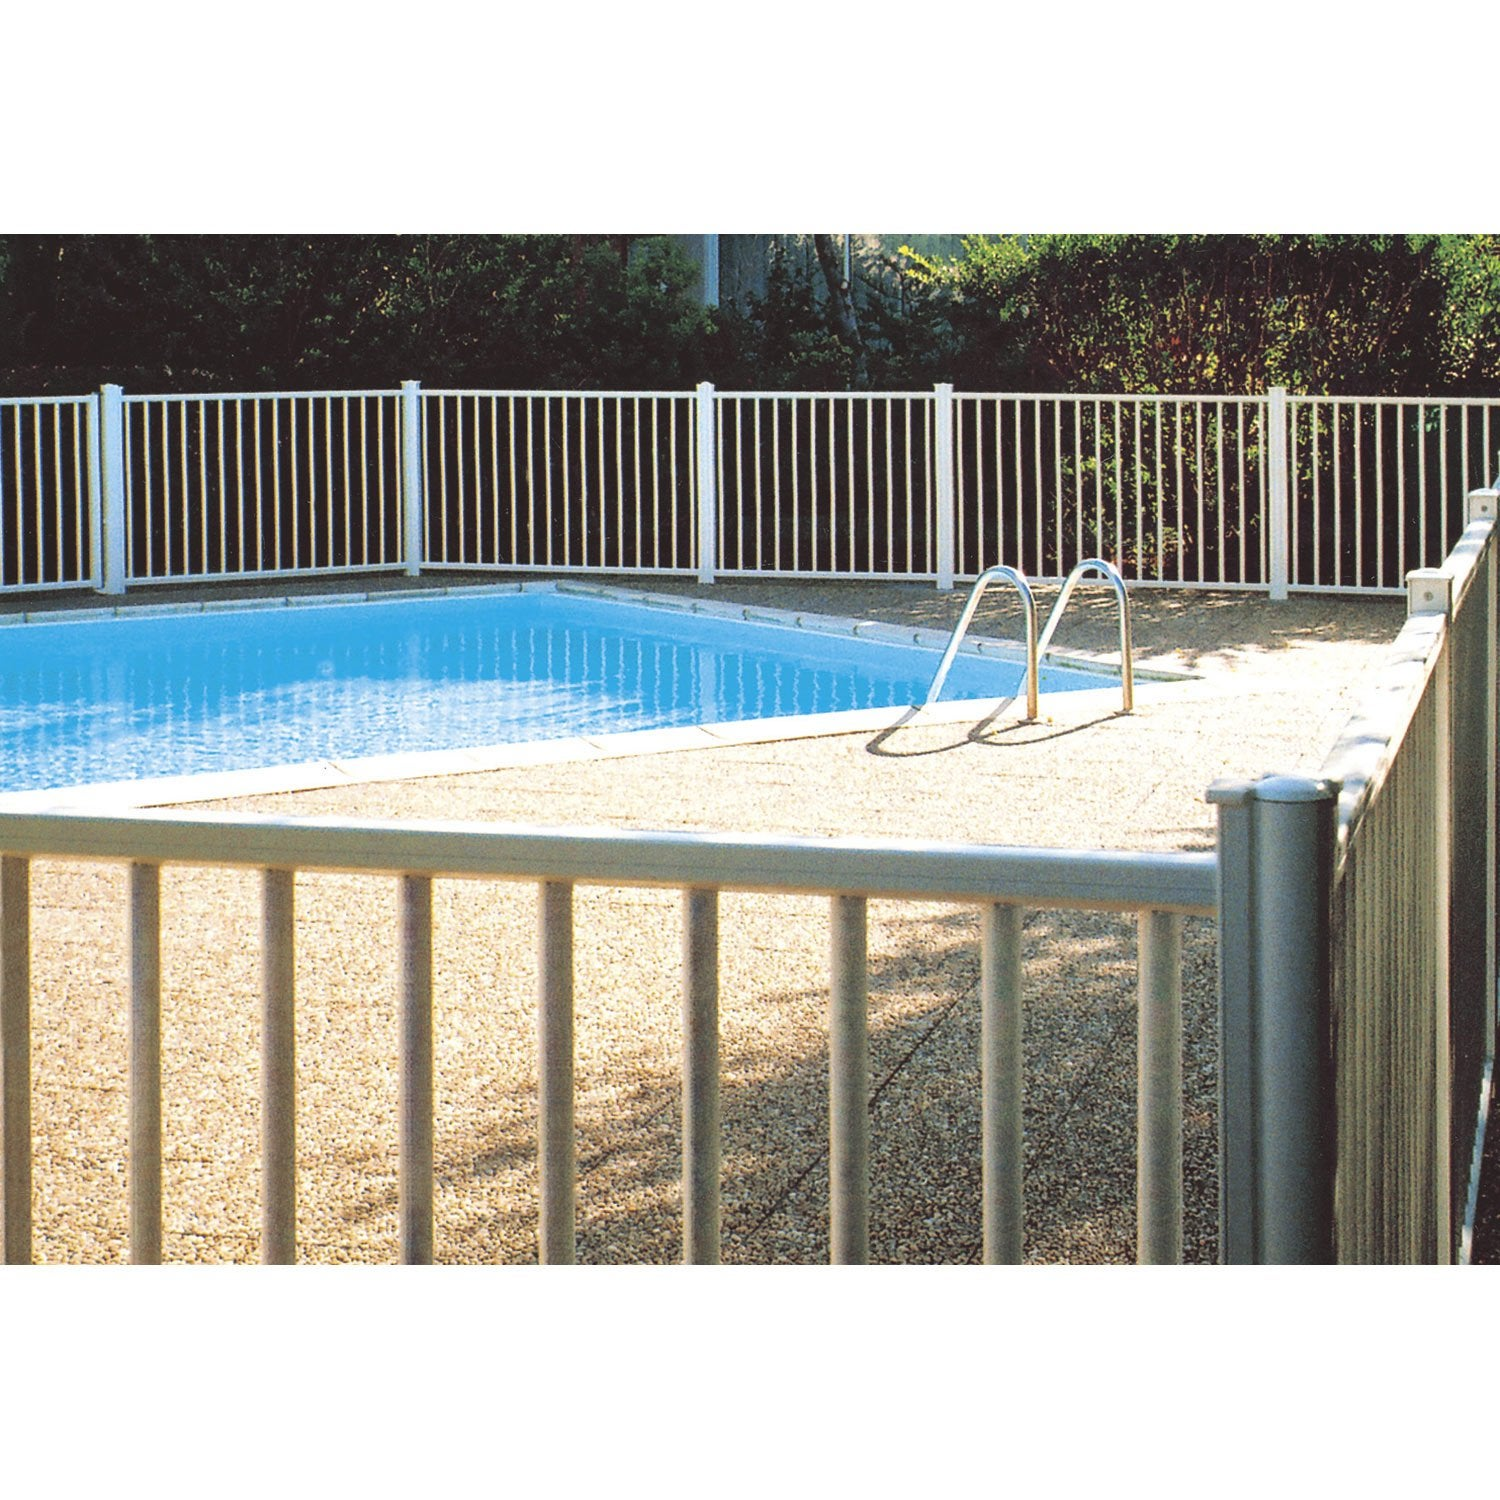 Barri re pour piscine aluminium issambres blanc 9010 h for Piscine barriere